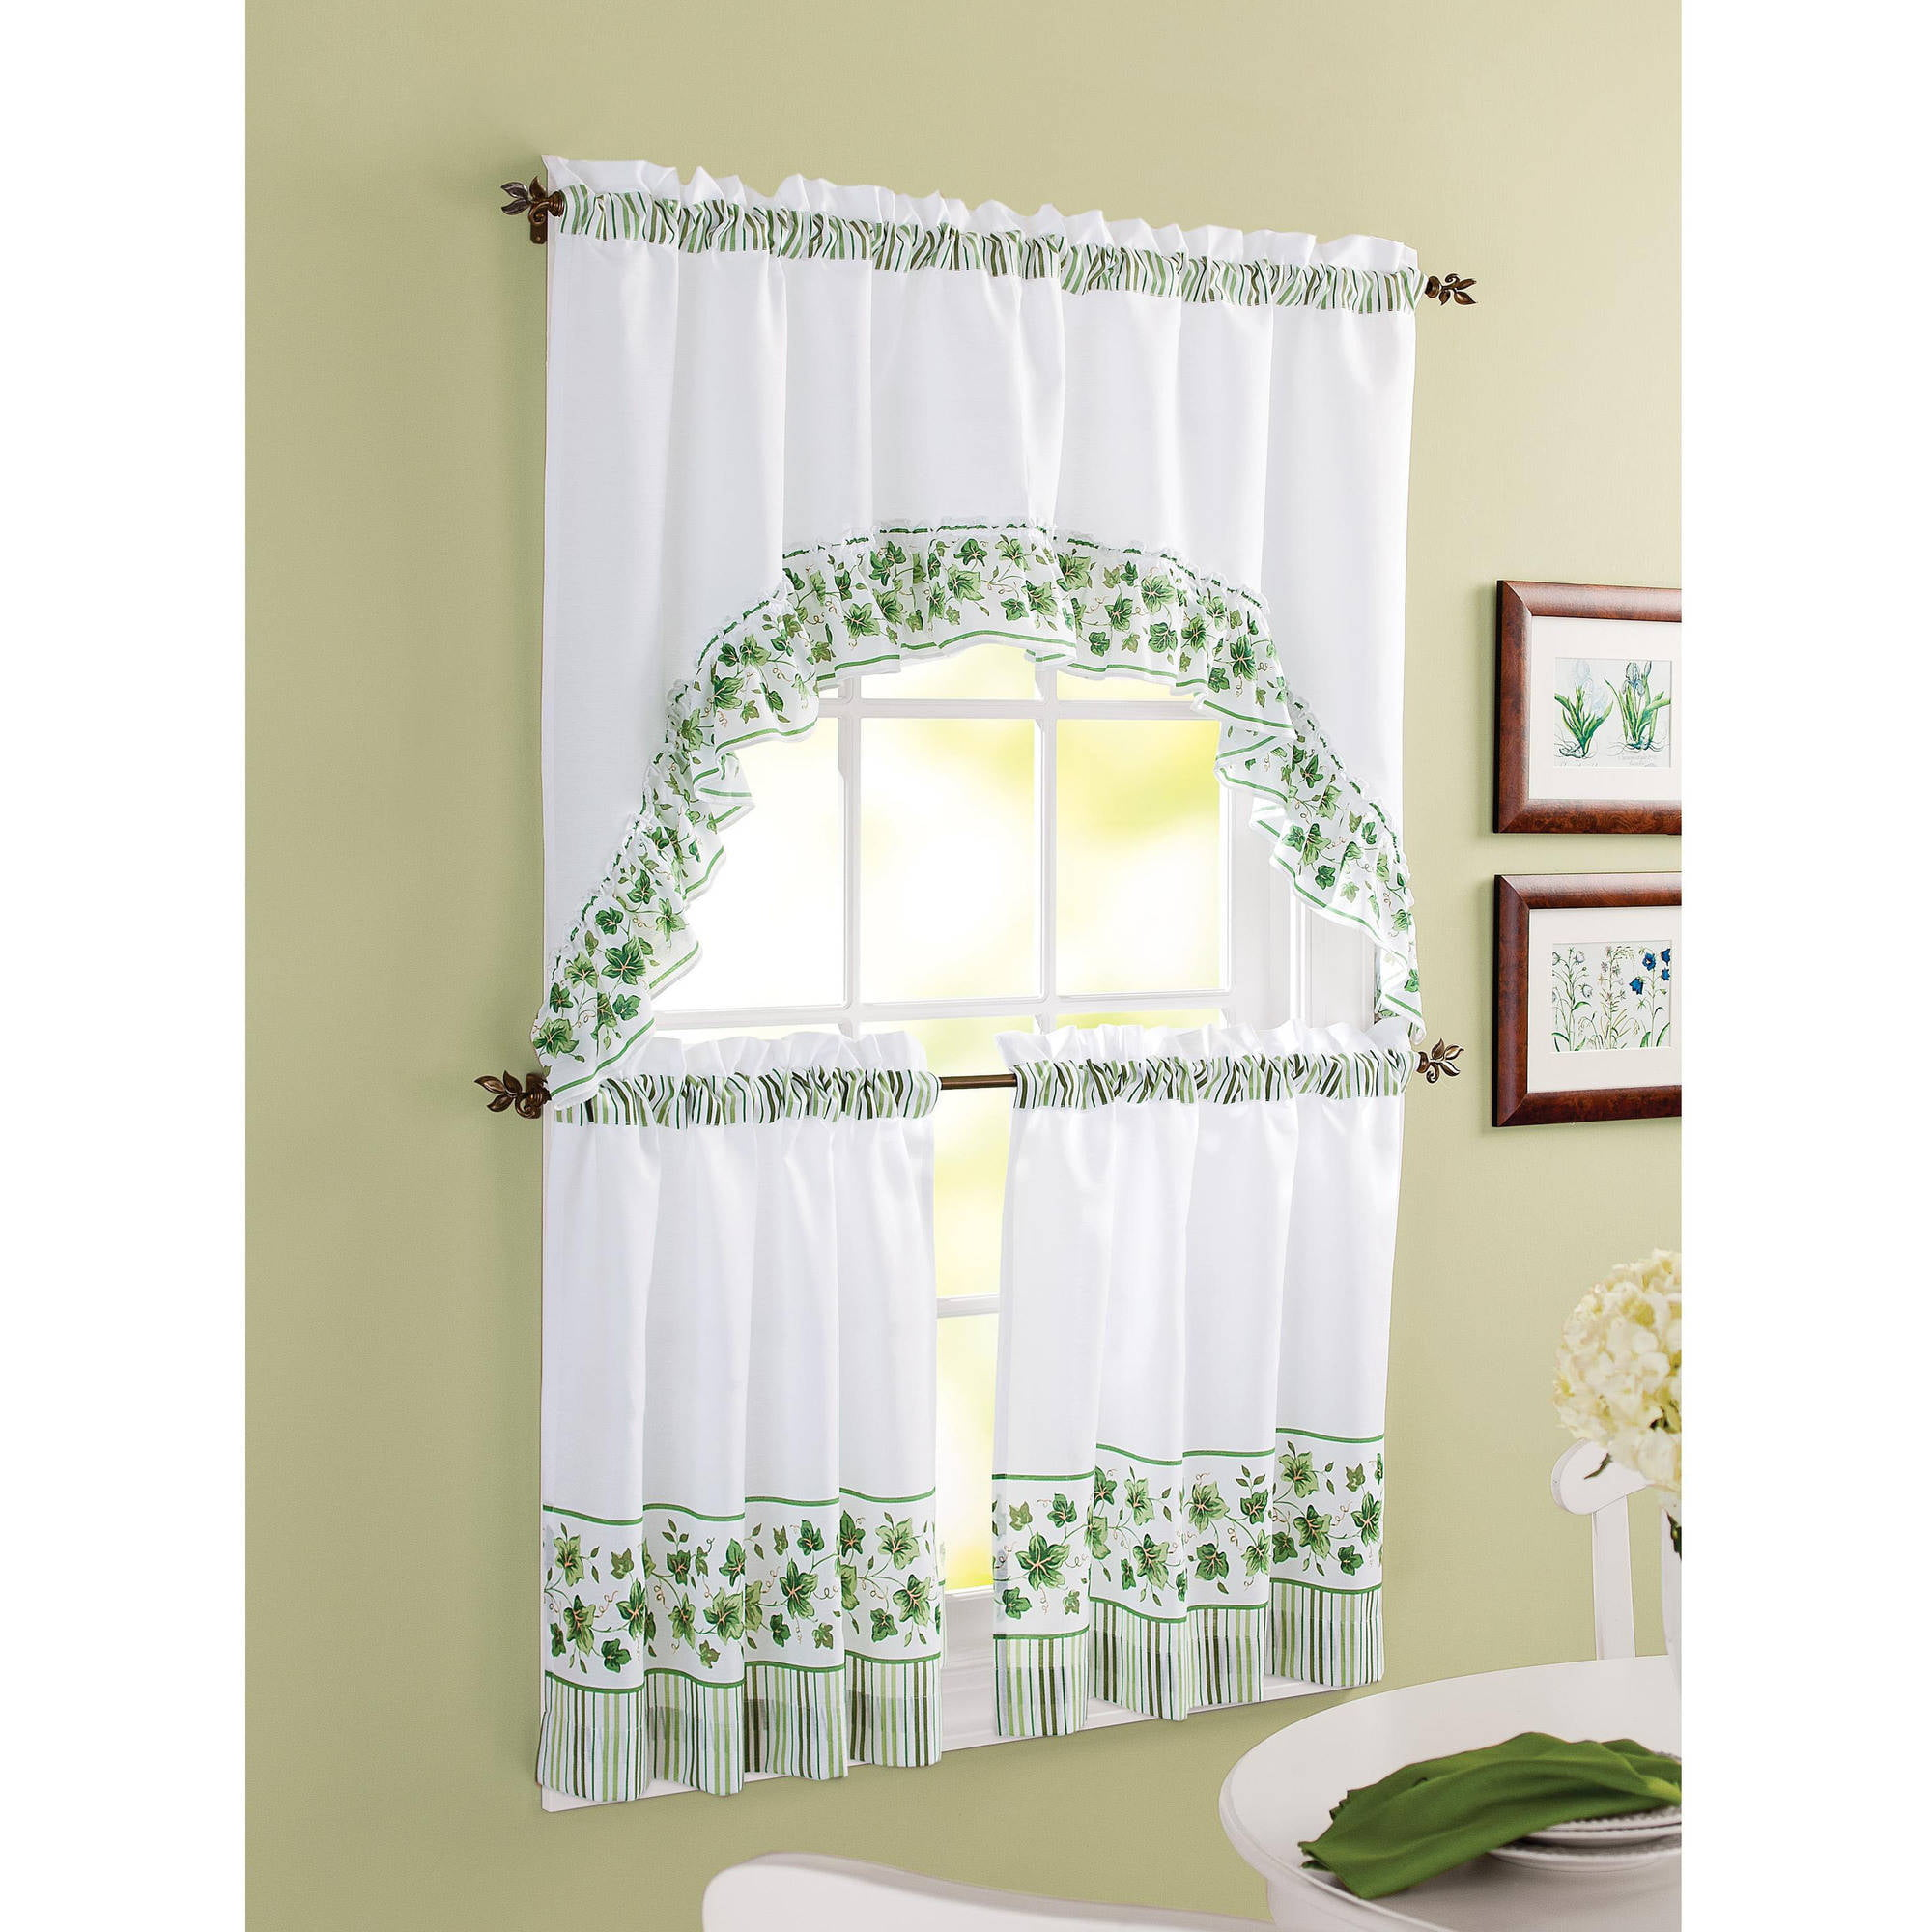 Better Homes and Gardens Ivy Kitchen Curtain Set - Walmart.com